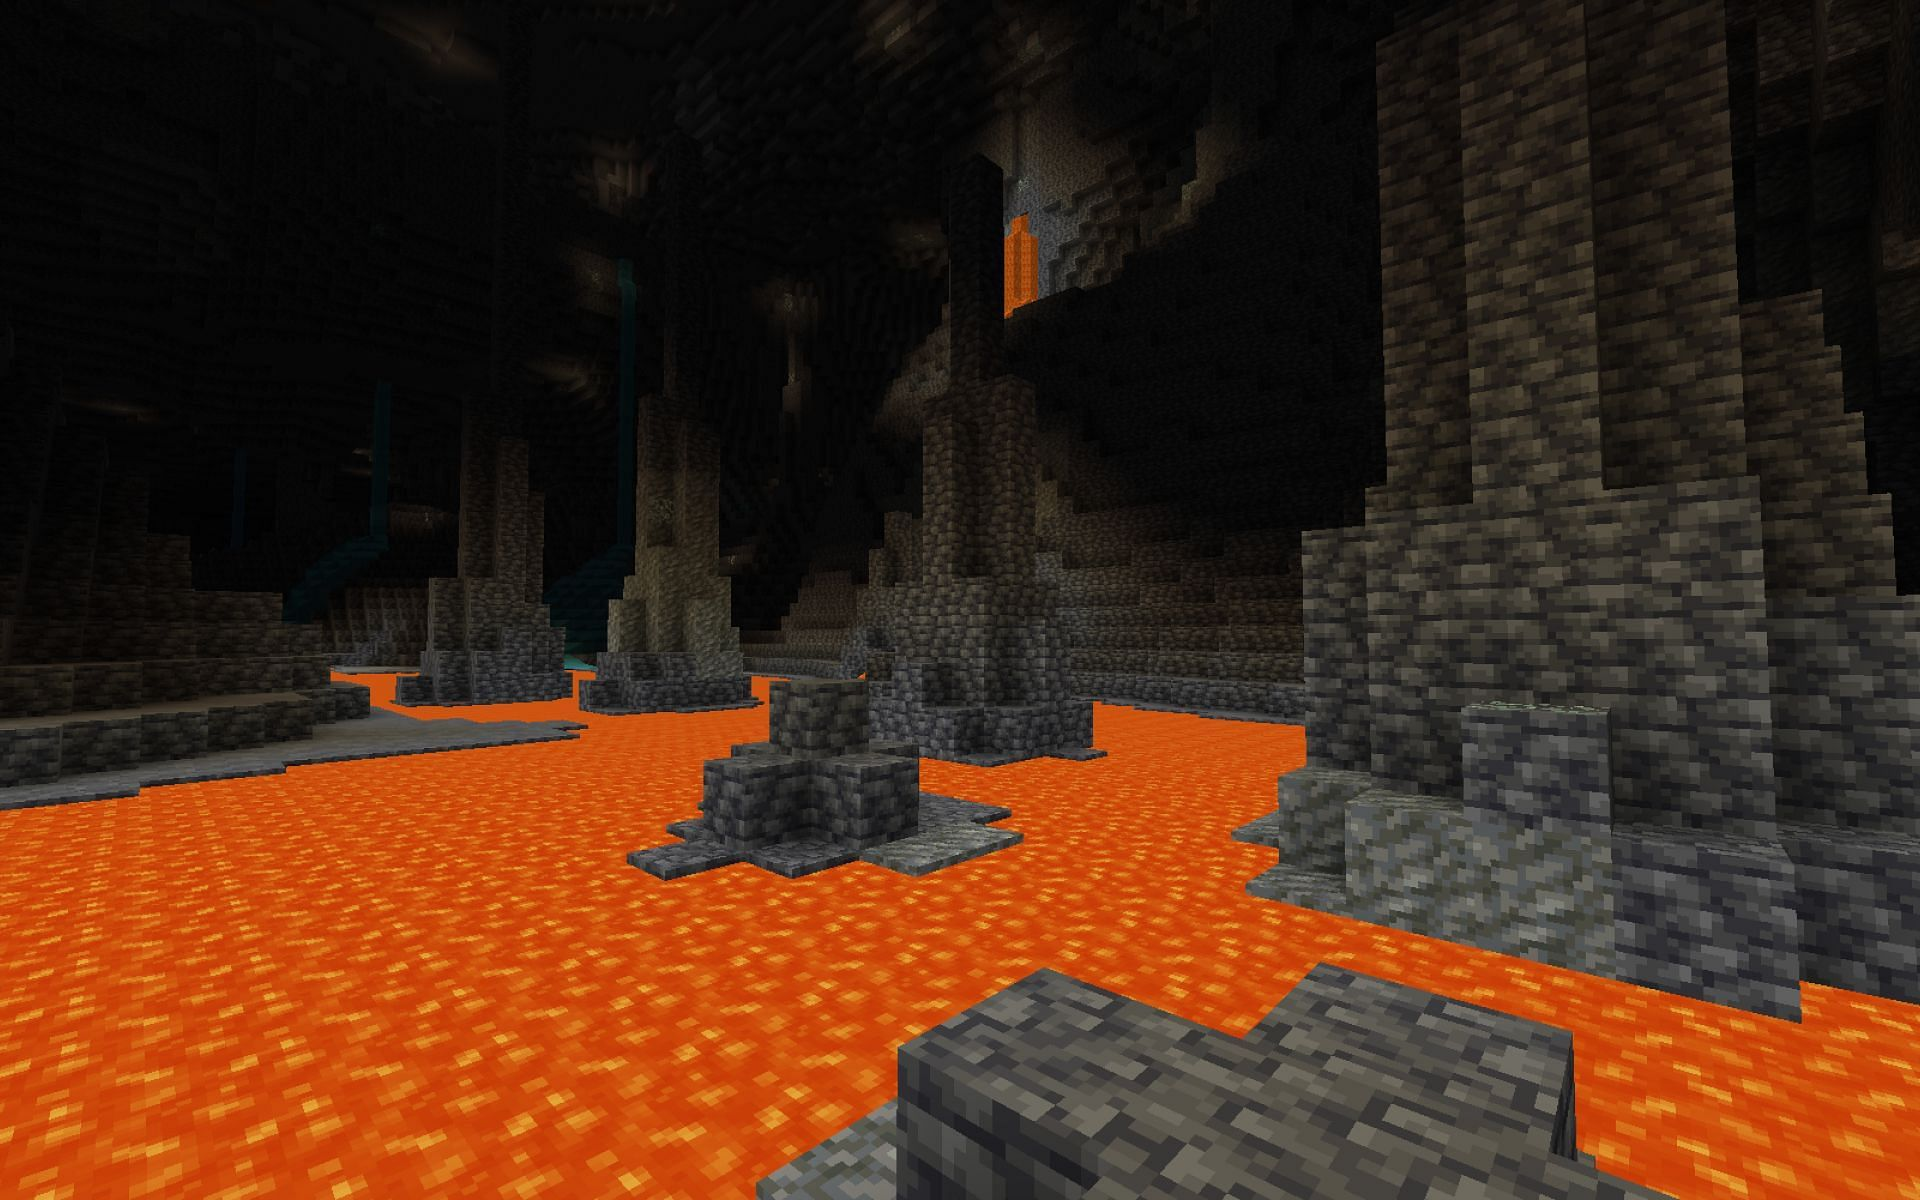 Players should avoid touching lava in-game (Image via Minecraft)